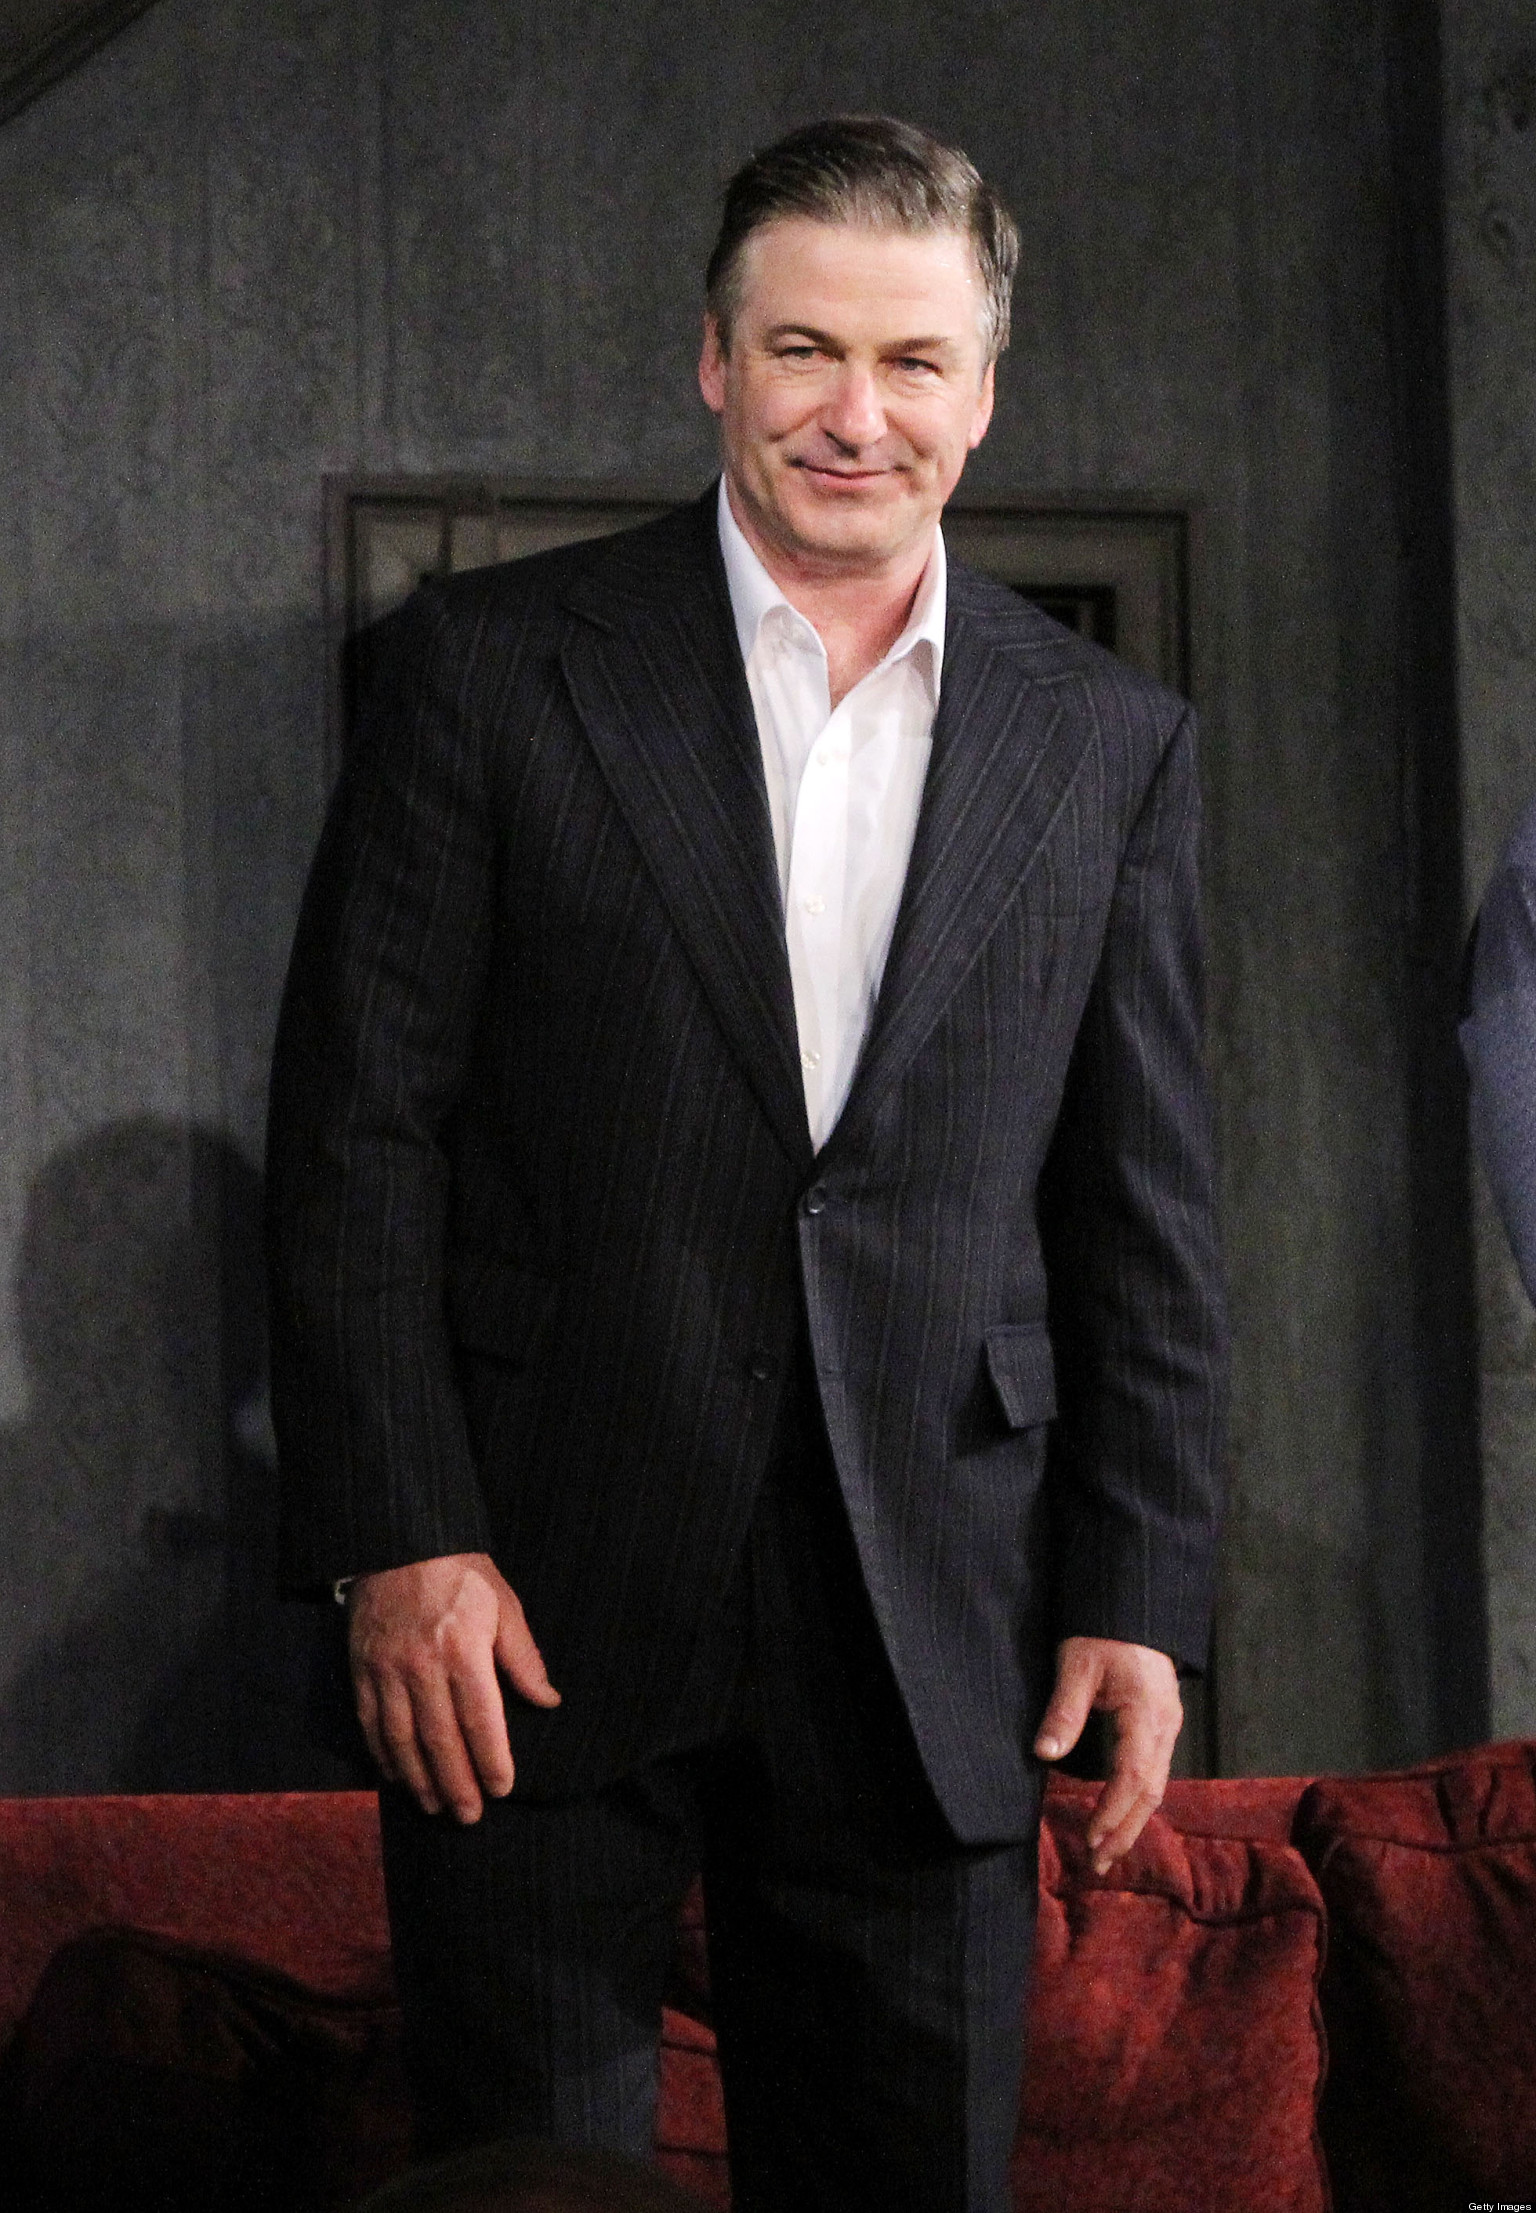 Alec Baldwin on Theatre: 'Everything Matters' | HuffPost